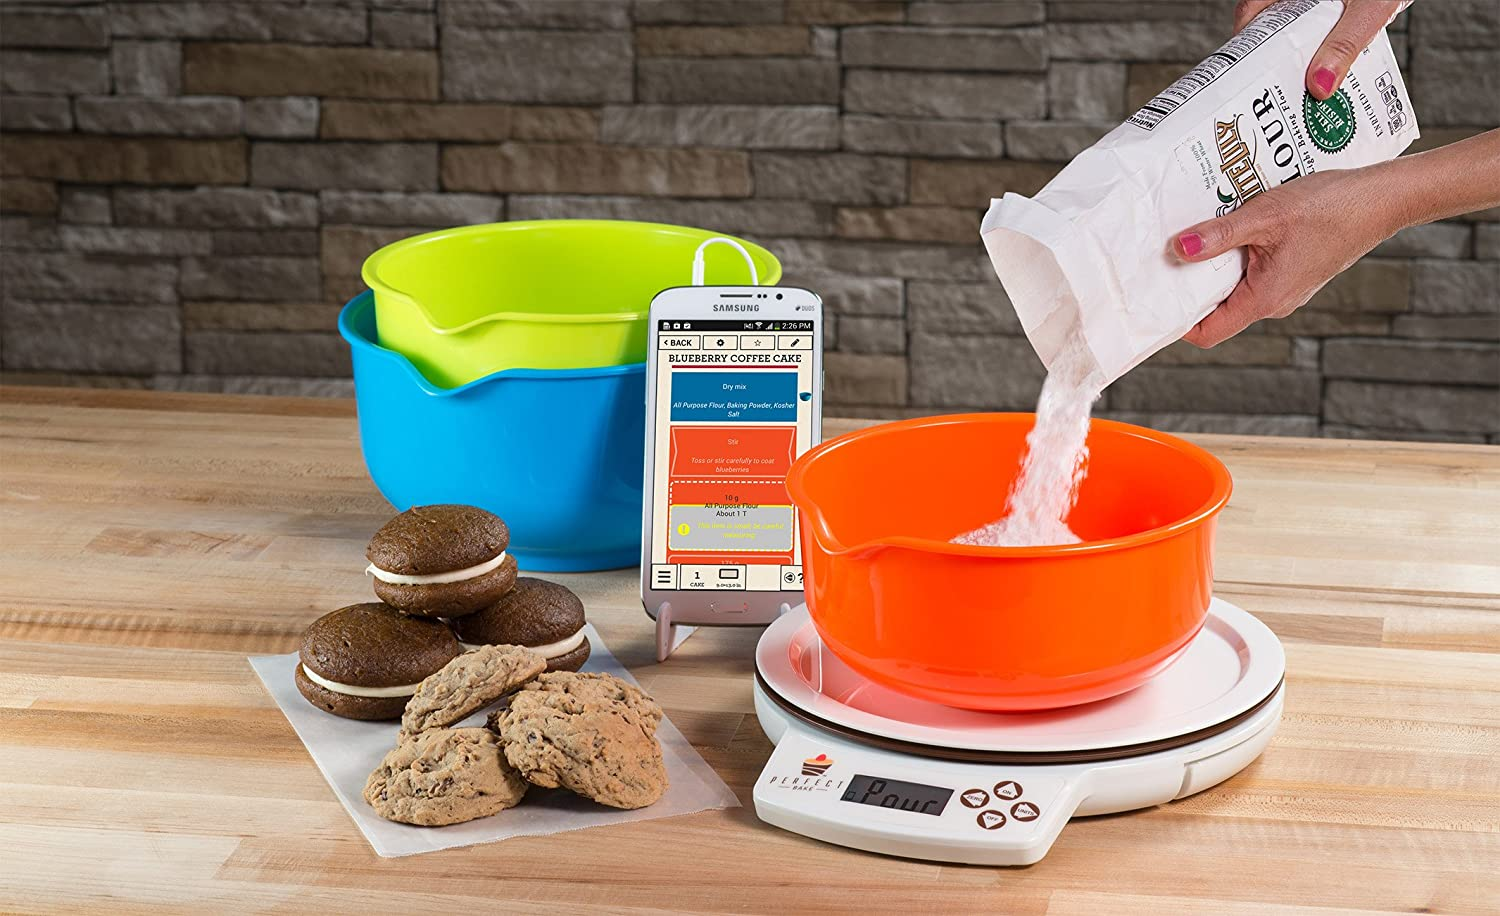 Perfect Bake 1.0 Smart Scale and Recipe App Kitchen Tool